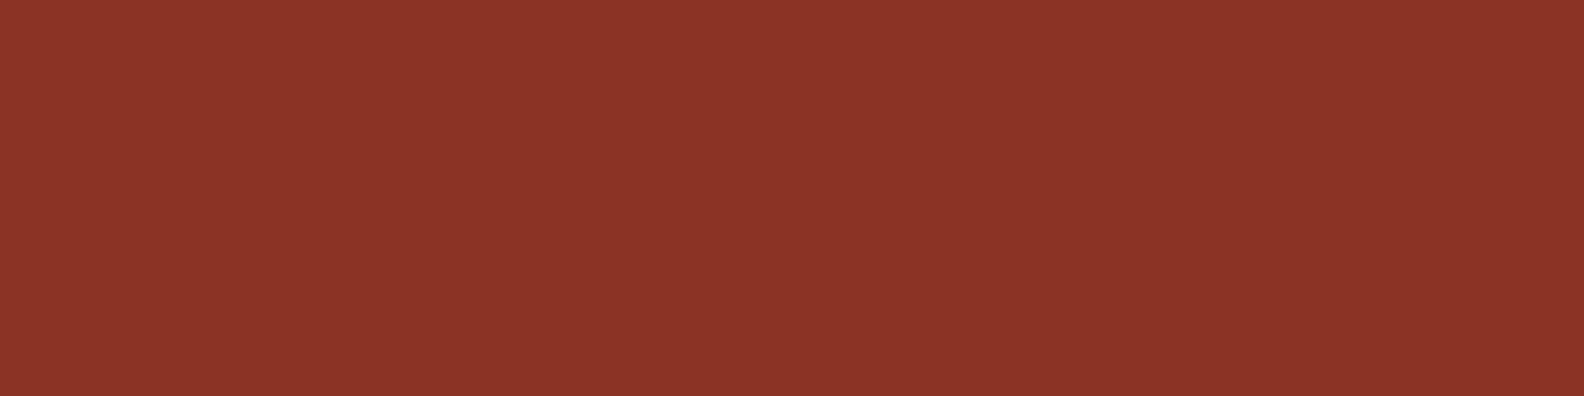 1584x396 Burnt Umber Solid Color Background